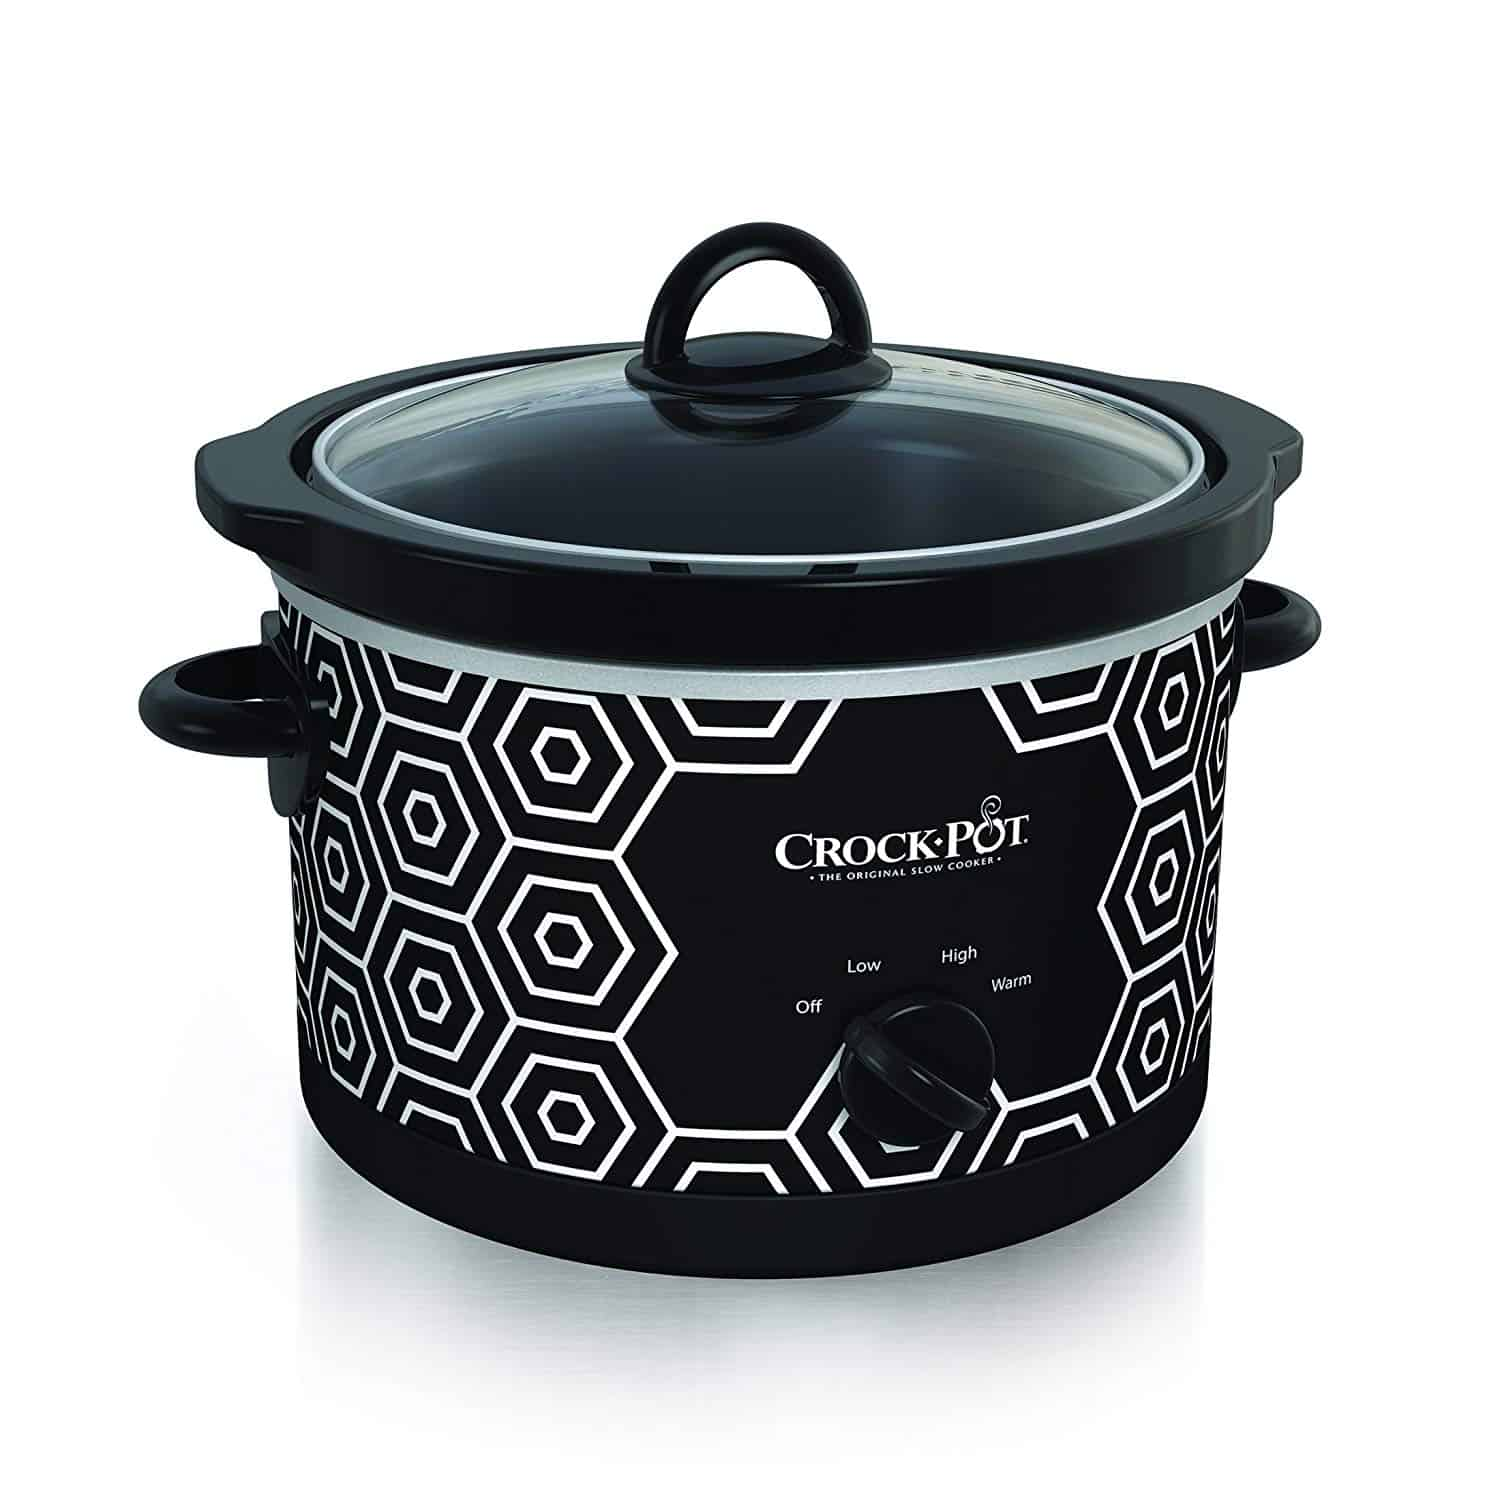 Best Crock Pot to Buy in 2020: 9 Reviews and Guide ...